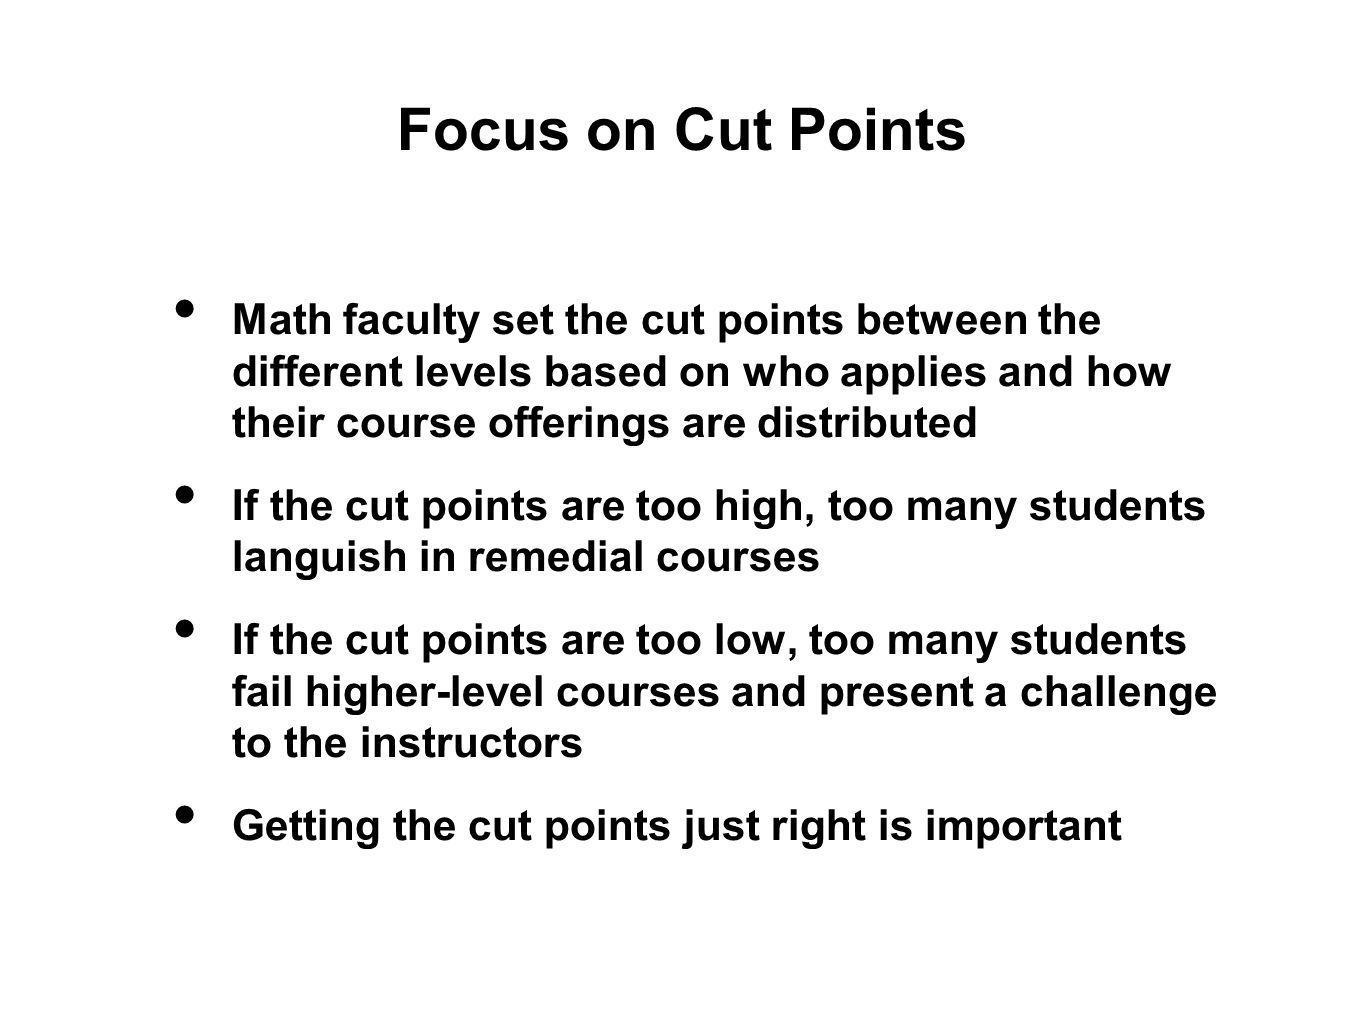 Focus on Cut Points Math faculty set the cut points between the different levels based on who applies and how their course offerings are distributed I